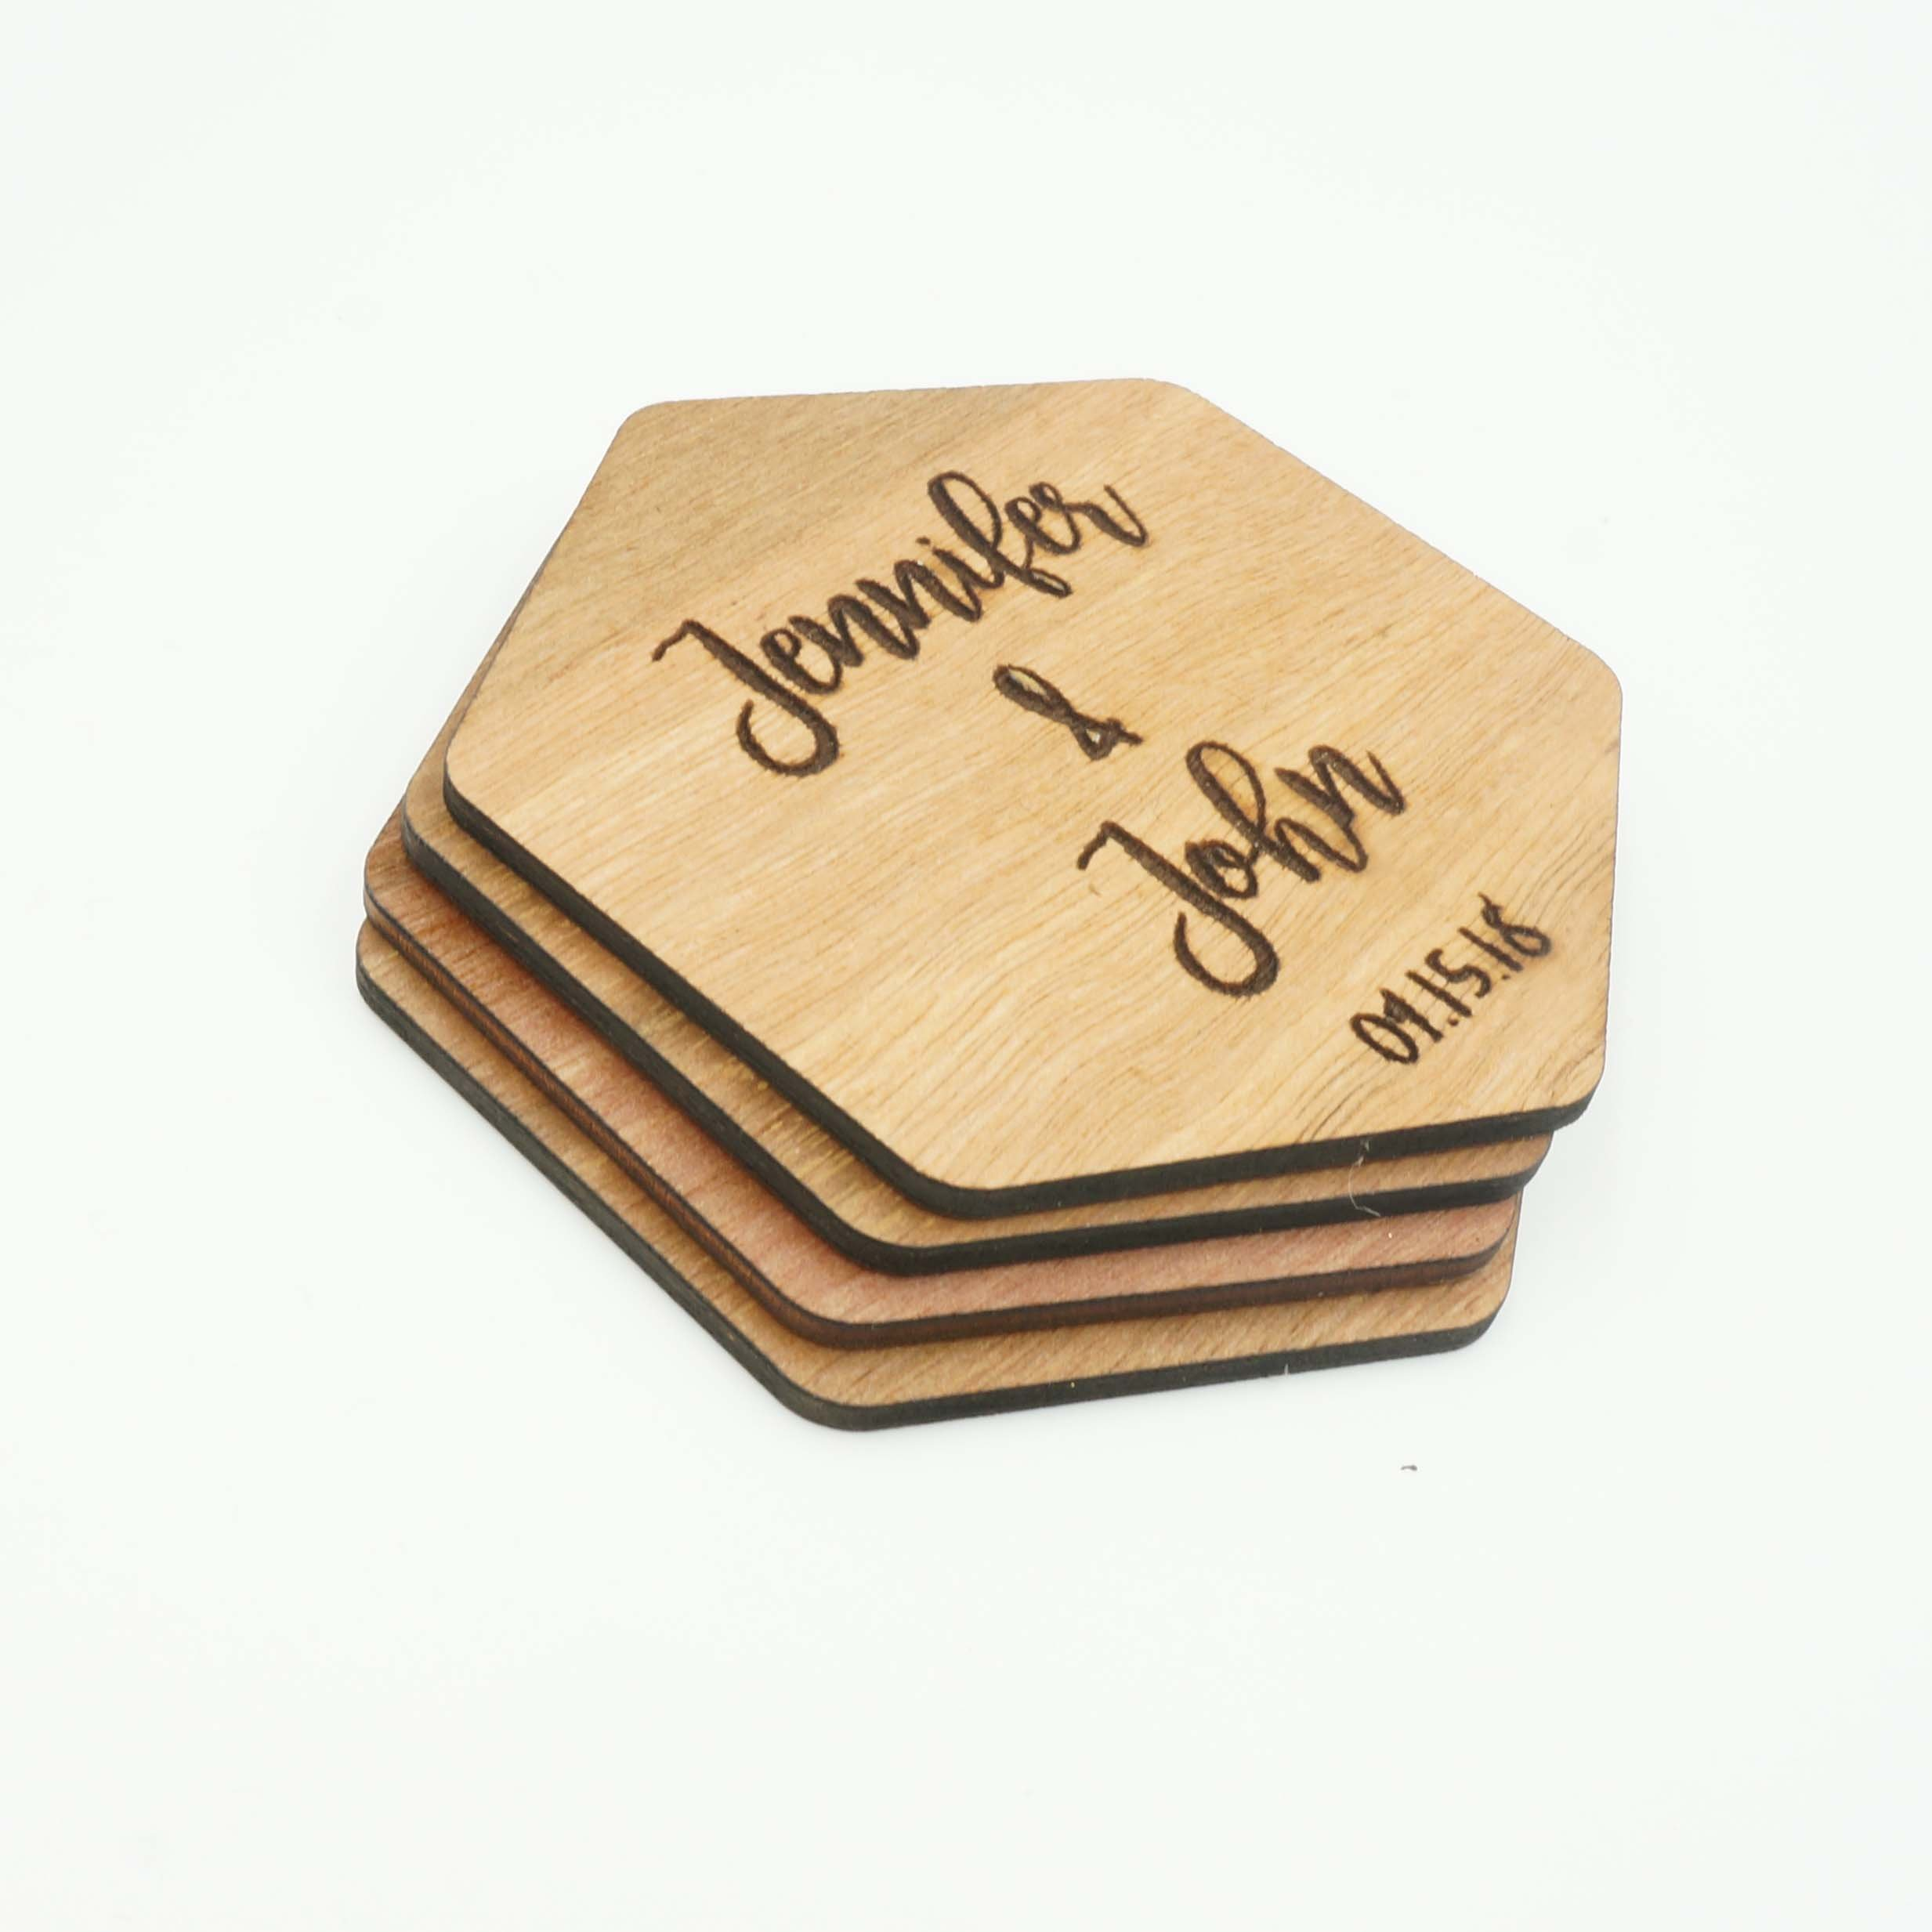 Custom Modern Hexagon Wooden Coasters Couples Name Wedding Date Coasters Personalized Engraved Cut Drink Holders Housewarming Whiskey Gift Idea